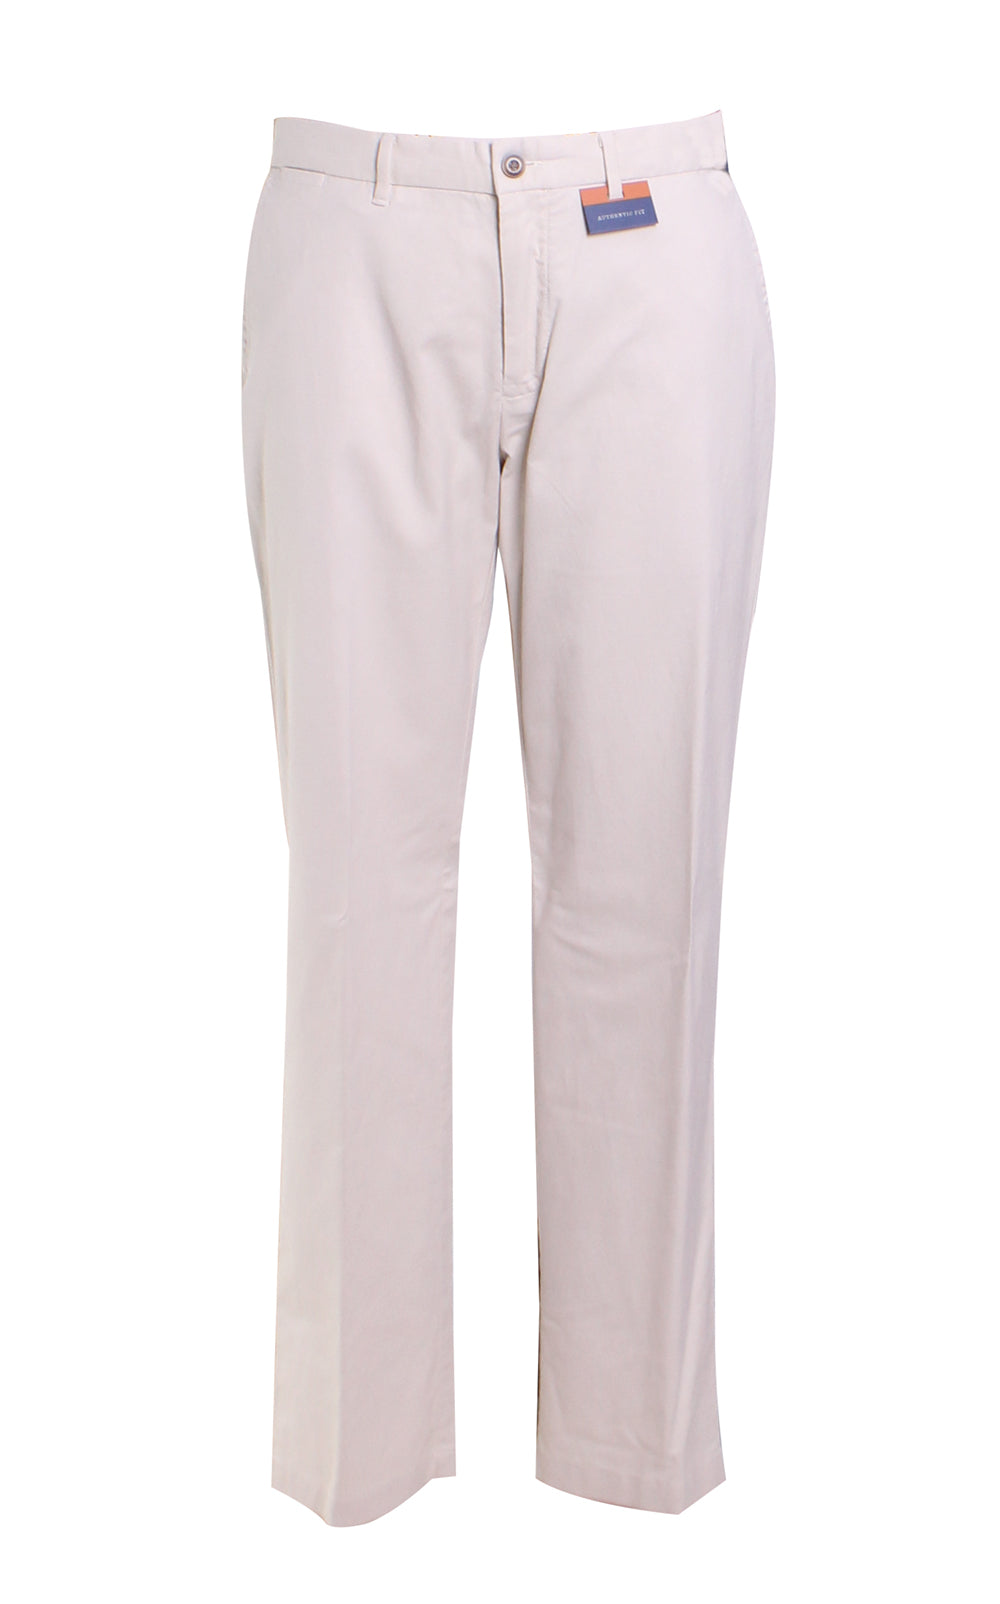 Tommy Bahama Offshore Pant in Spray